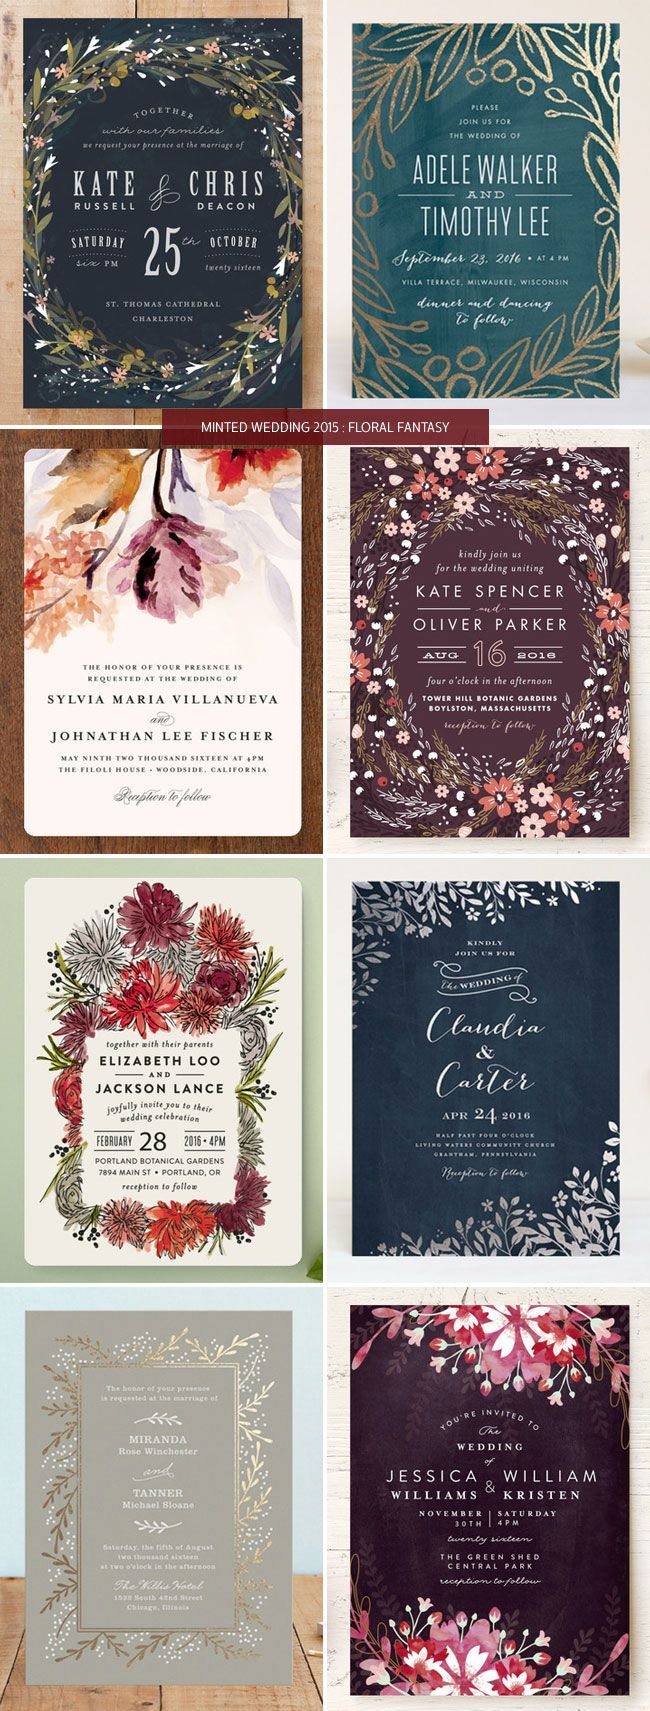 95 best paperphilia images on Pinterest Stationery Wedding